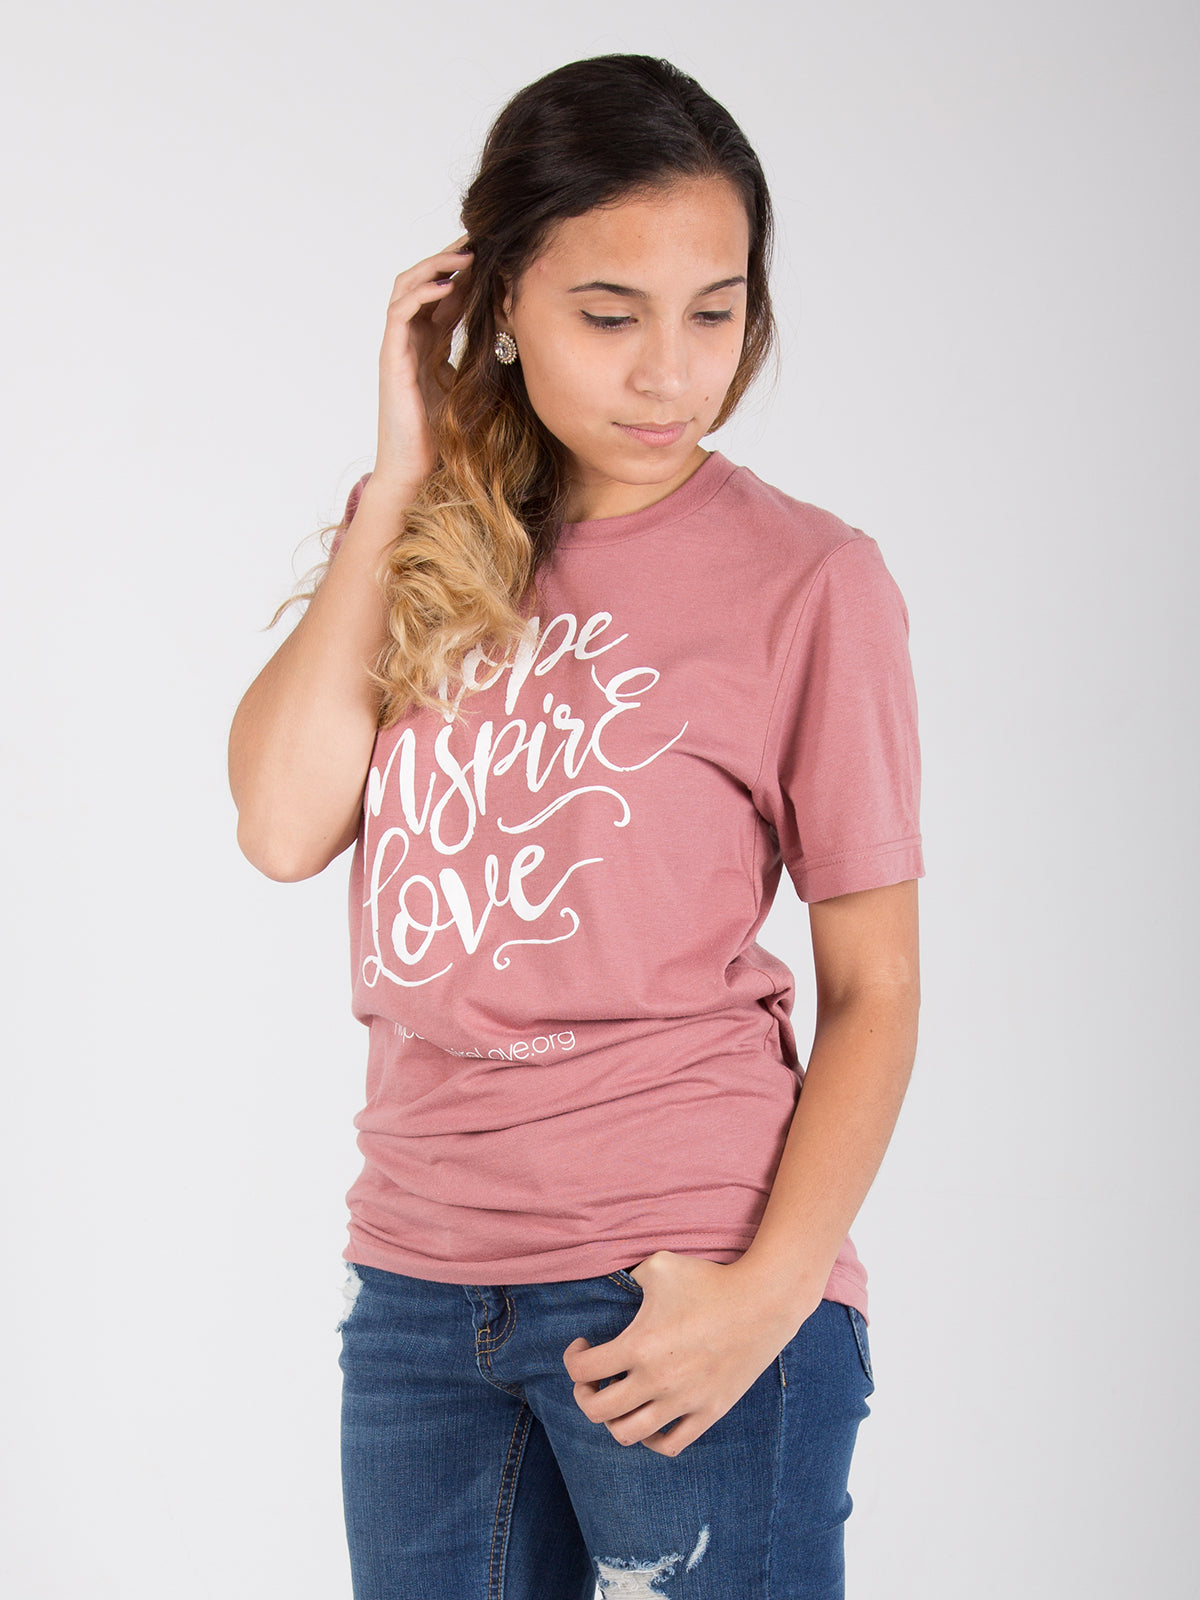 Hope Inspire Love - Mauve Short Sleeve T-Shirt - Unisex